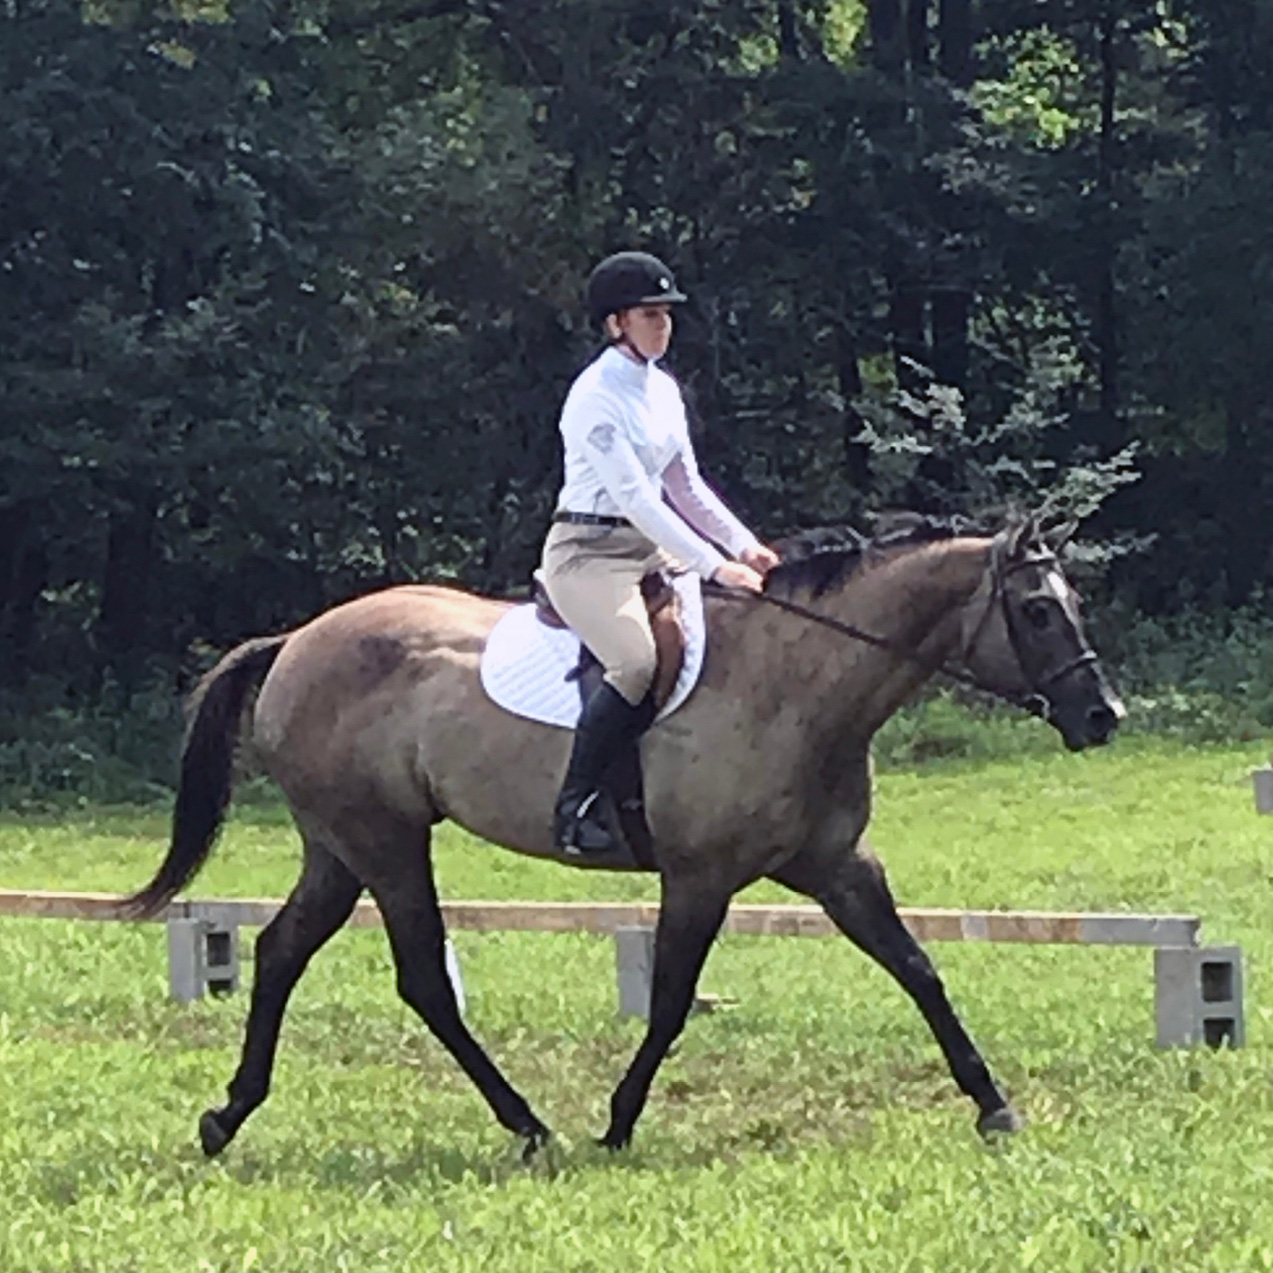 Equestrian Center at Beverly Farm Riding Lessons. Young woman practices her English riding skills dense woods in the background.